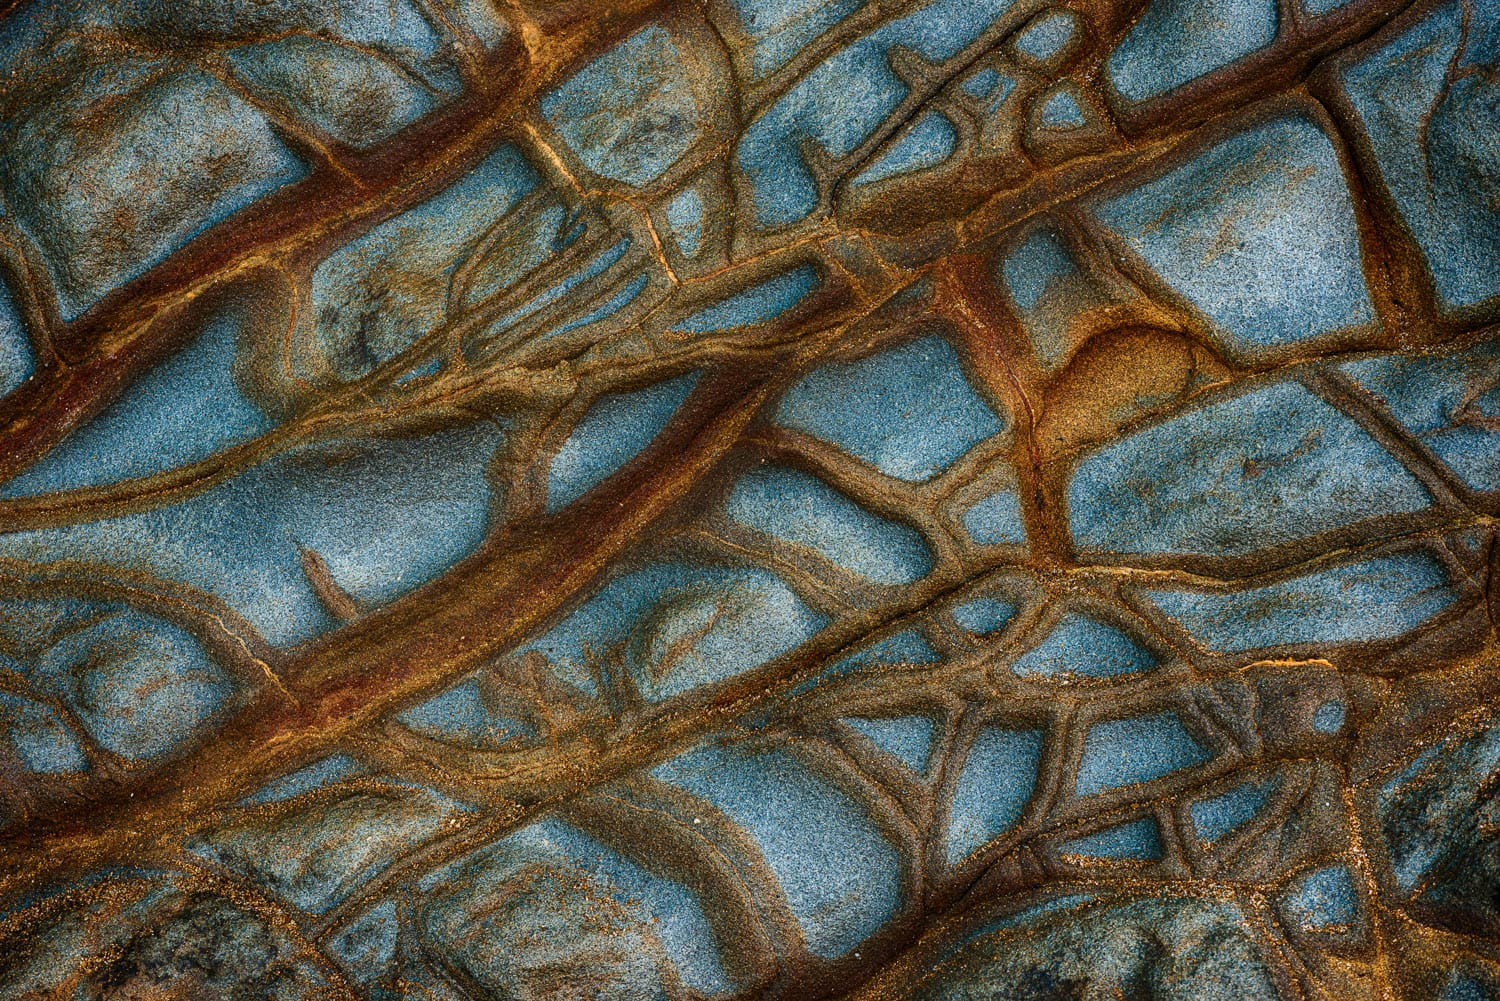 Rock patterns create a mix of warm and cool tones in this coastal abstract